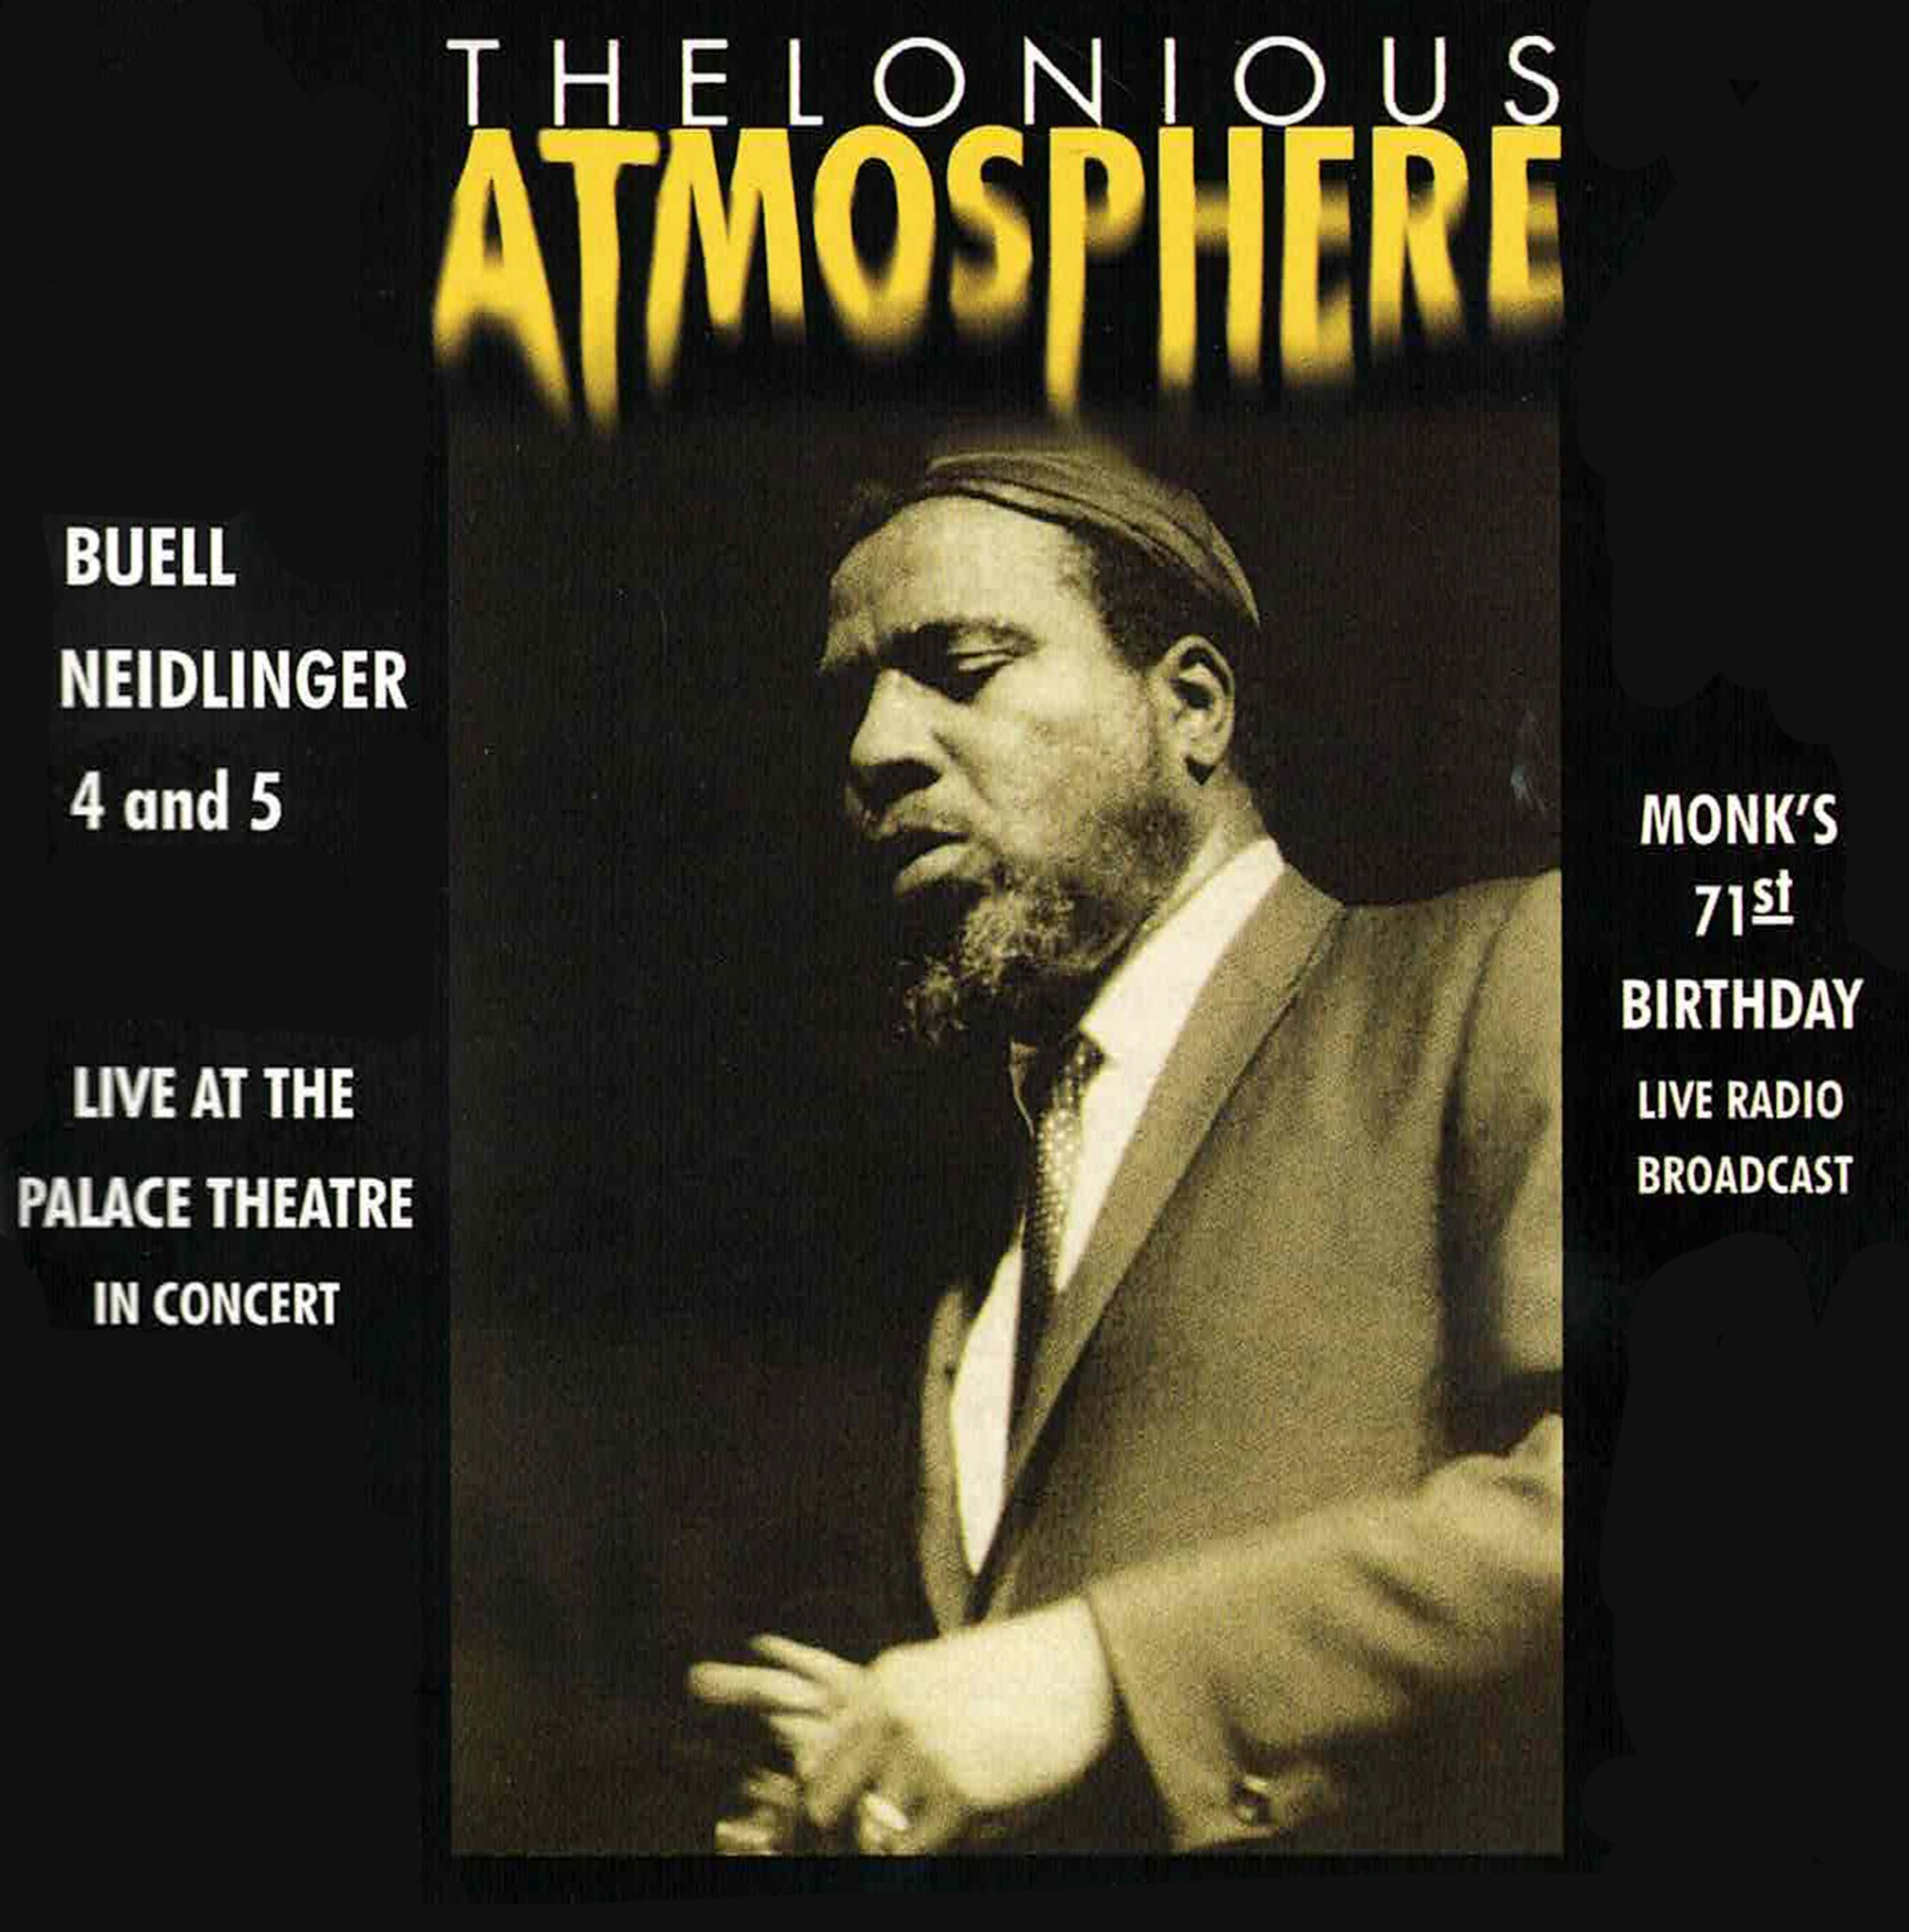 Buell Neidlinger 4 and 5 - Thelonious Atmosphere (K2B2 3269) MP3